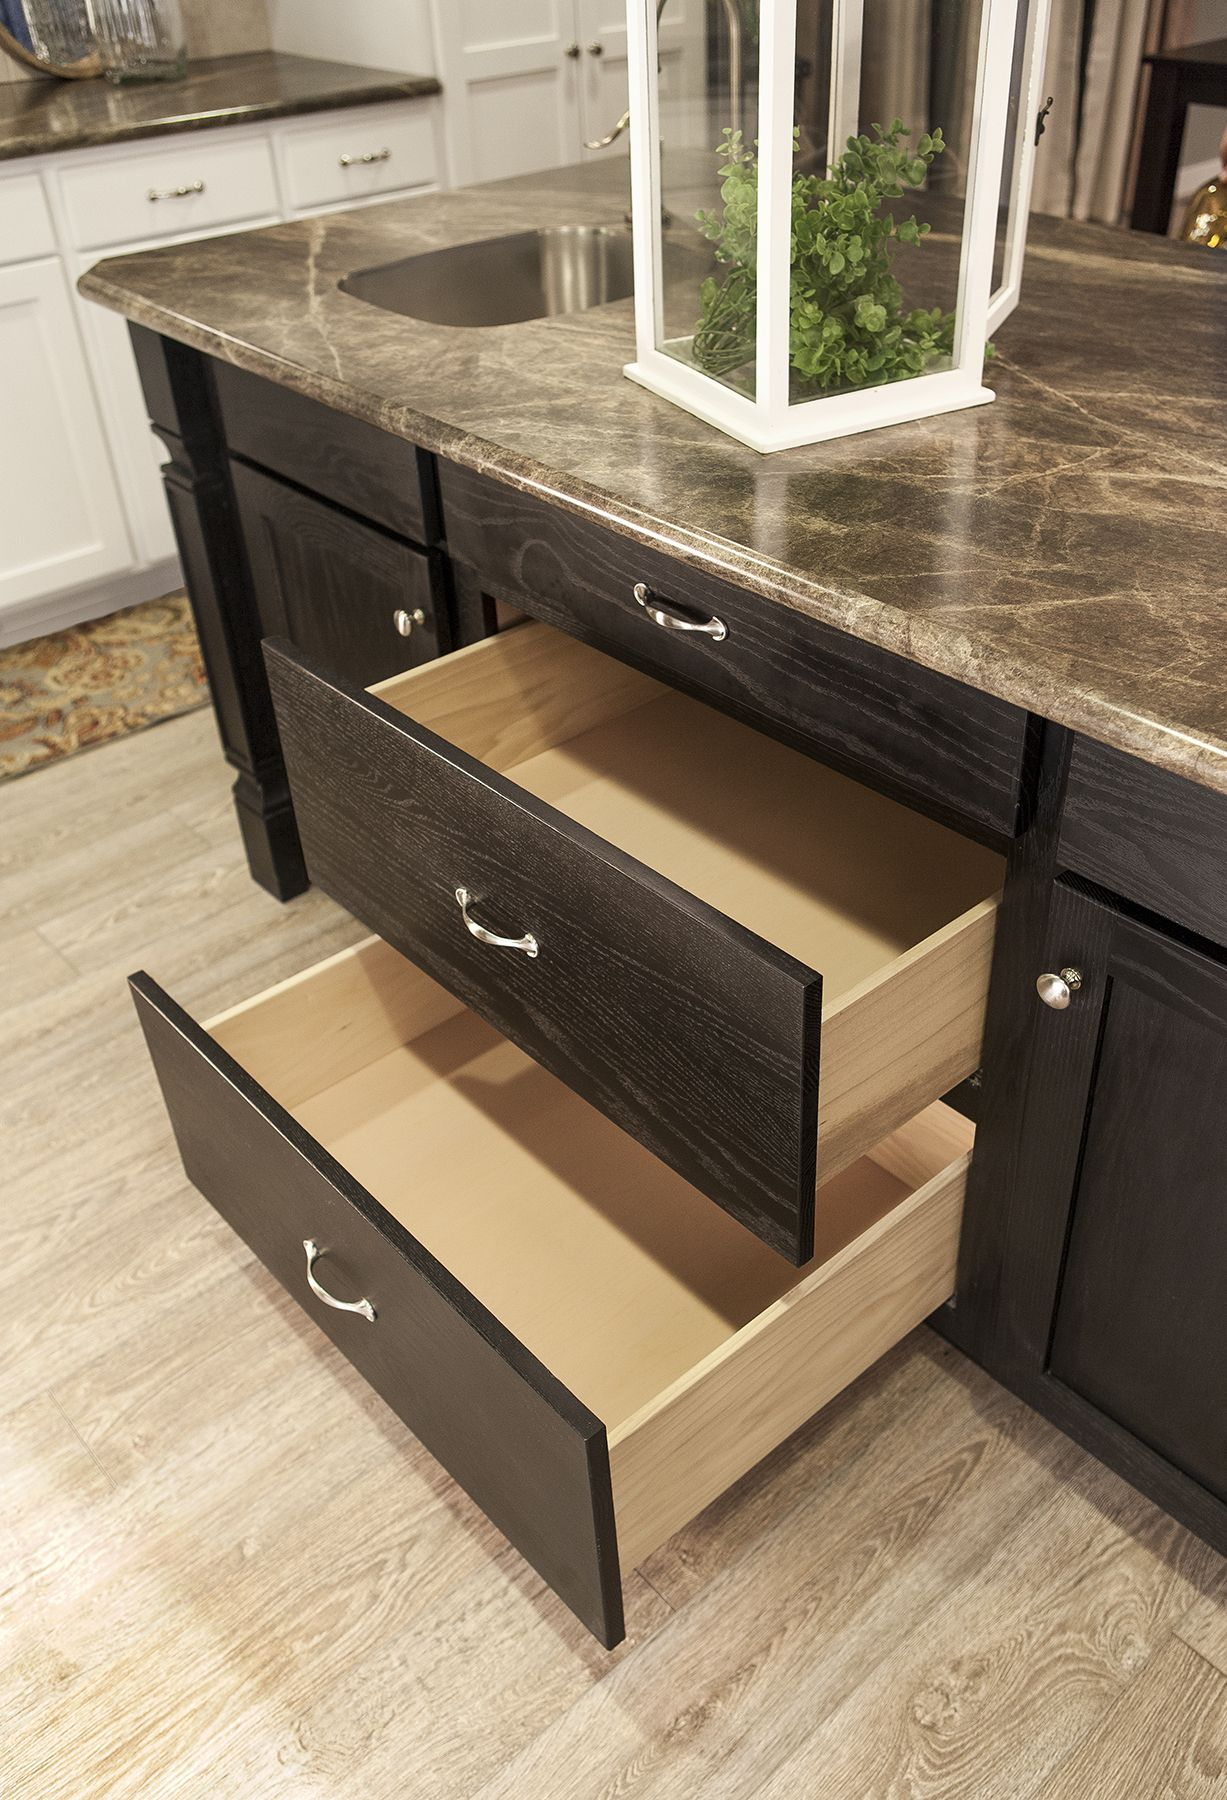 Pots & Pans Drawers in Kitchen Island